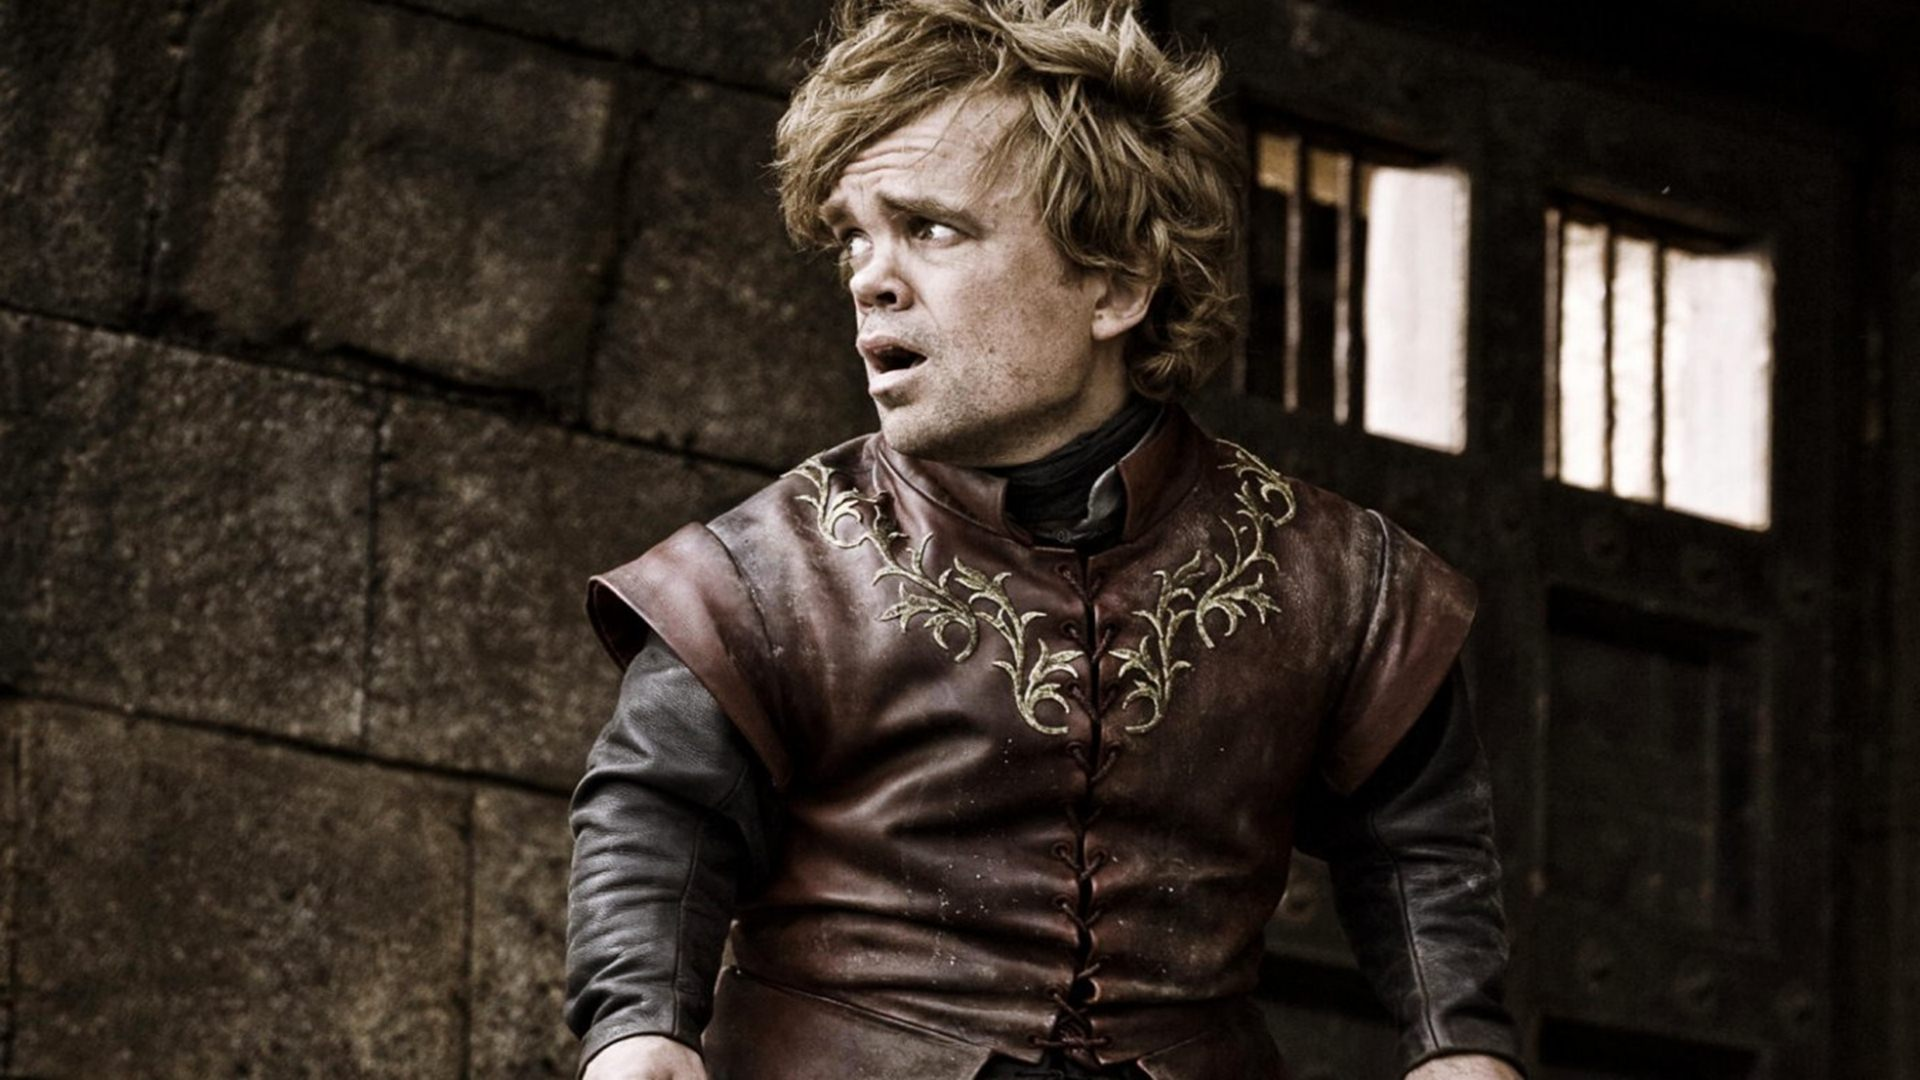 tumblr_static_peter_dinklage_as_tyrion_lannister_game_of_thrones_wallpaper